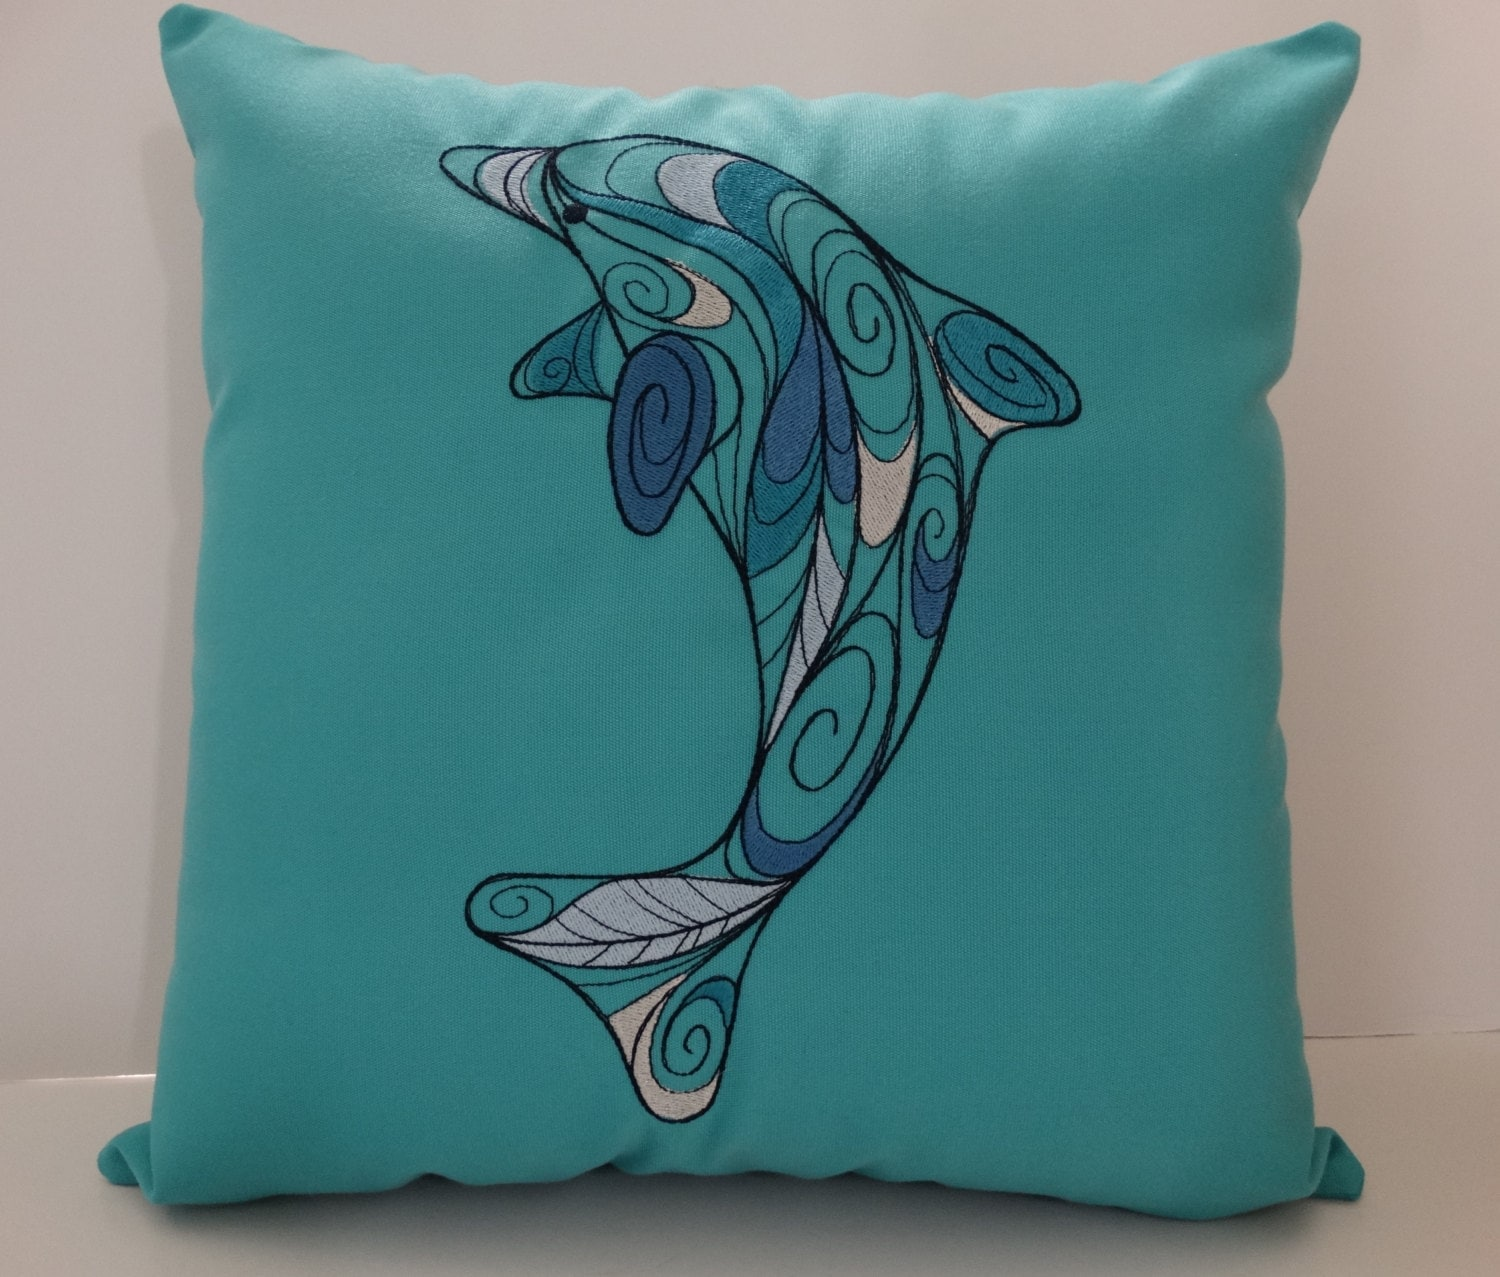 seller out the top small ocean printed decor with ideas code of card beach inspiration pillow decorative gallery pillows on see that it throw